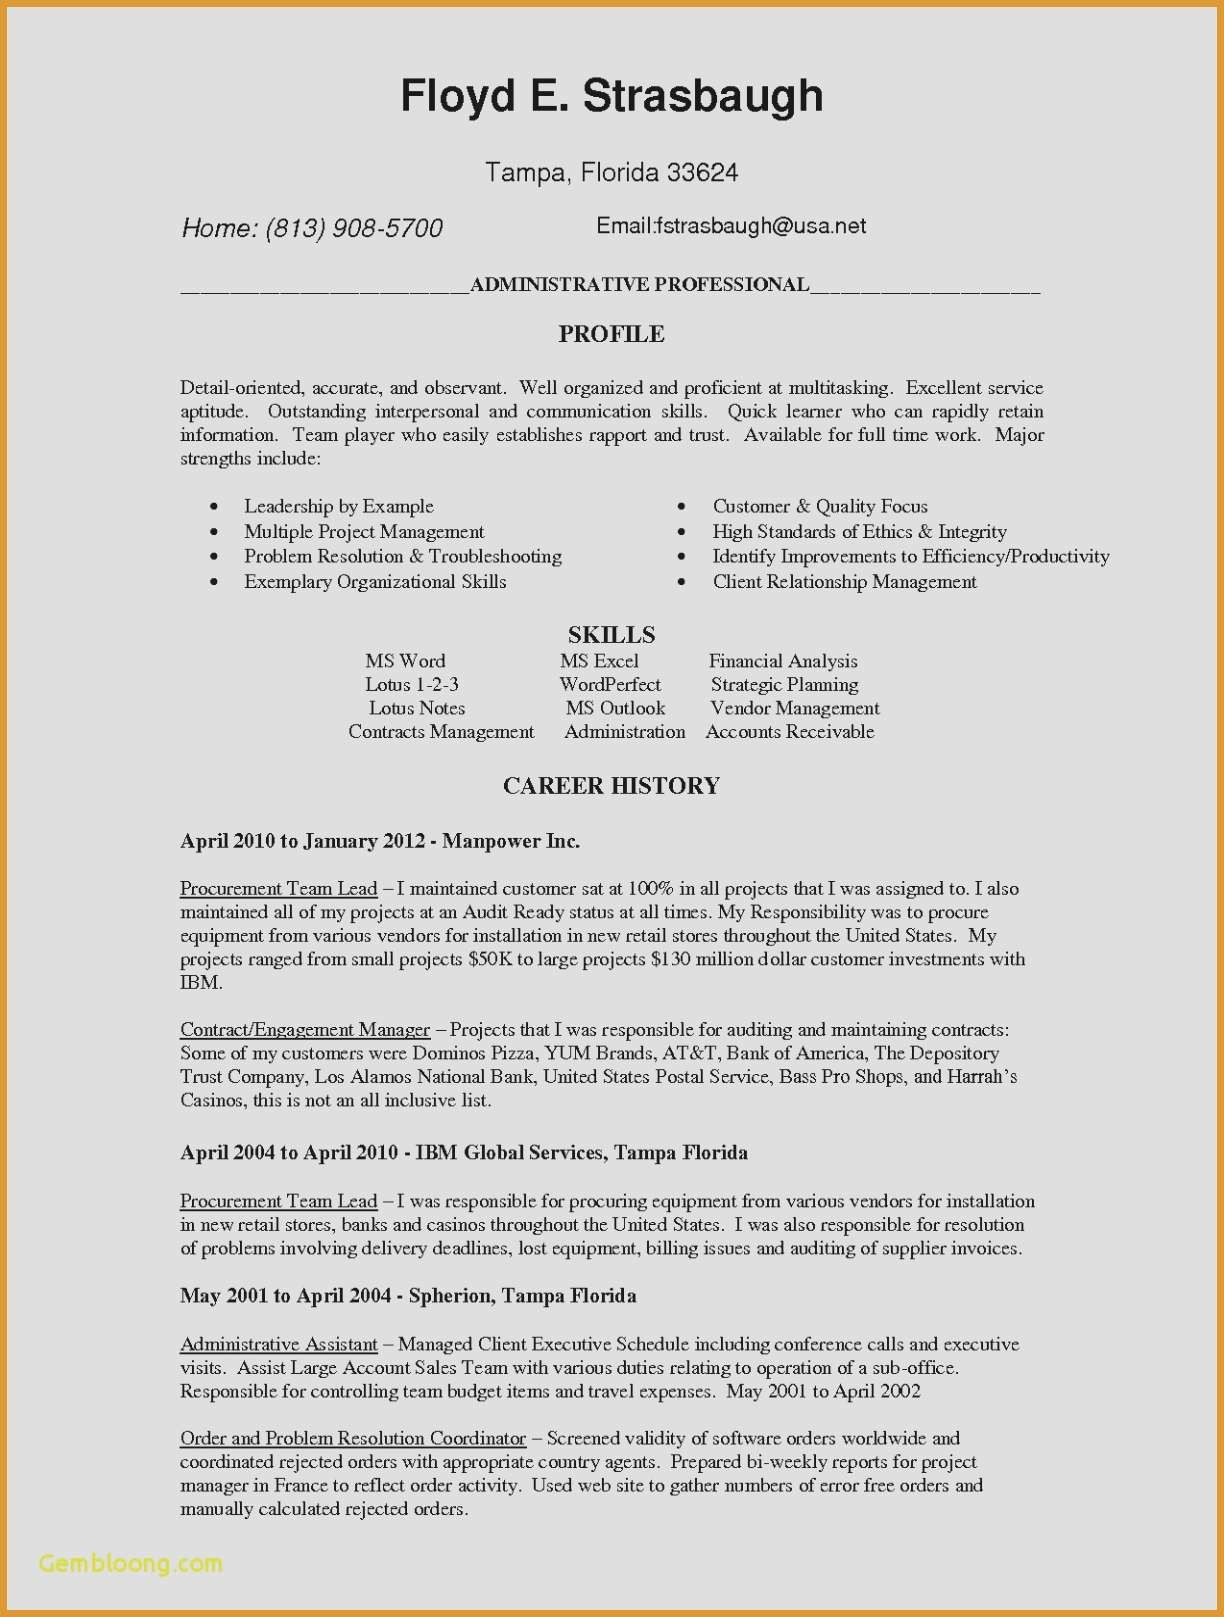 data analysis resume example-Data Analysis Resume 24 Data Analysis Resume 1-i